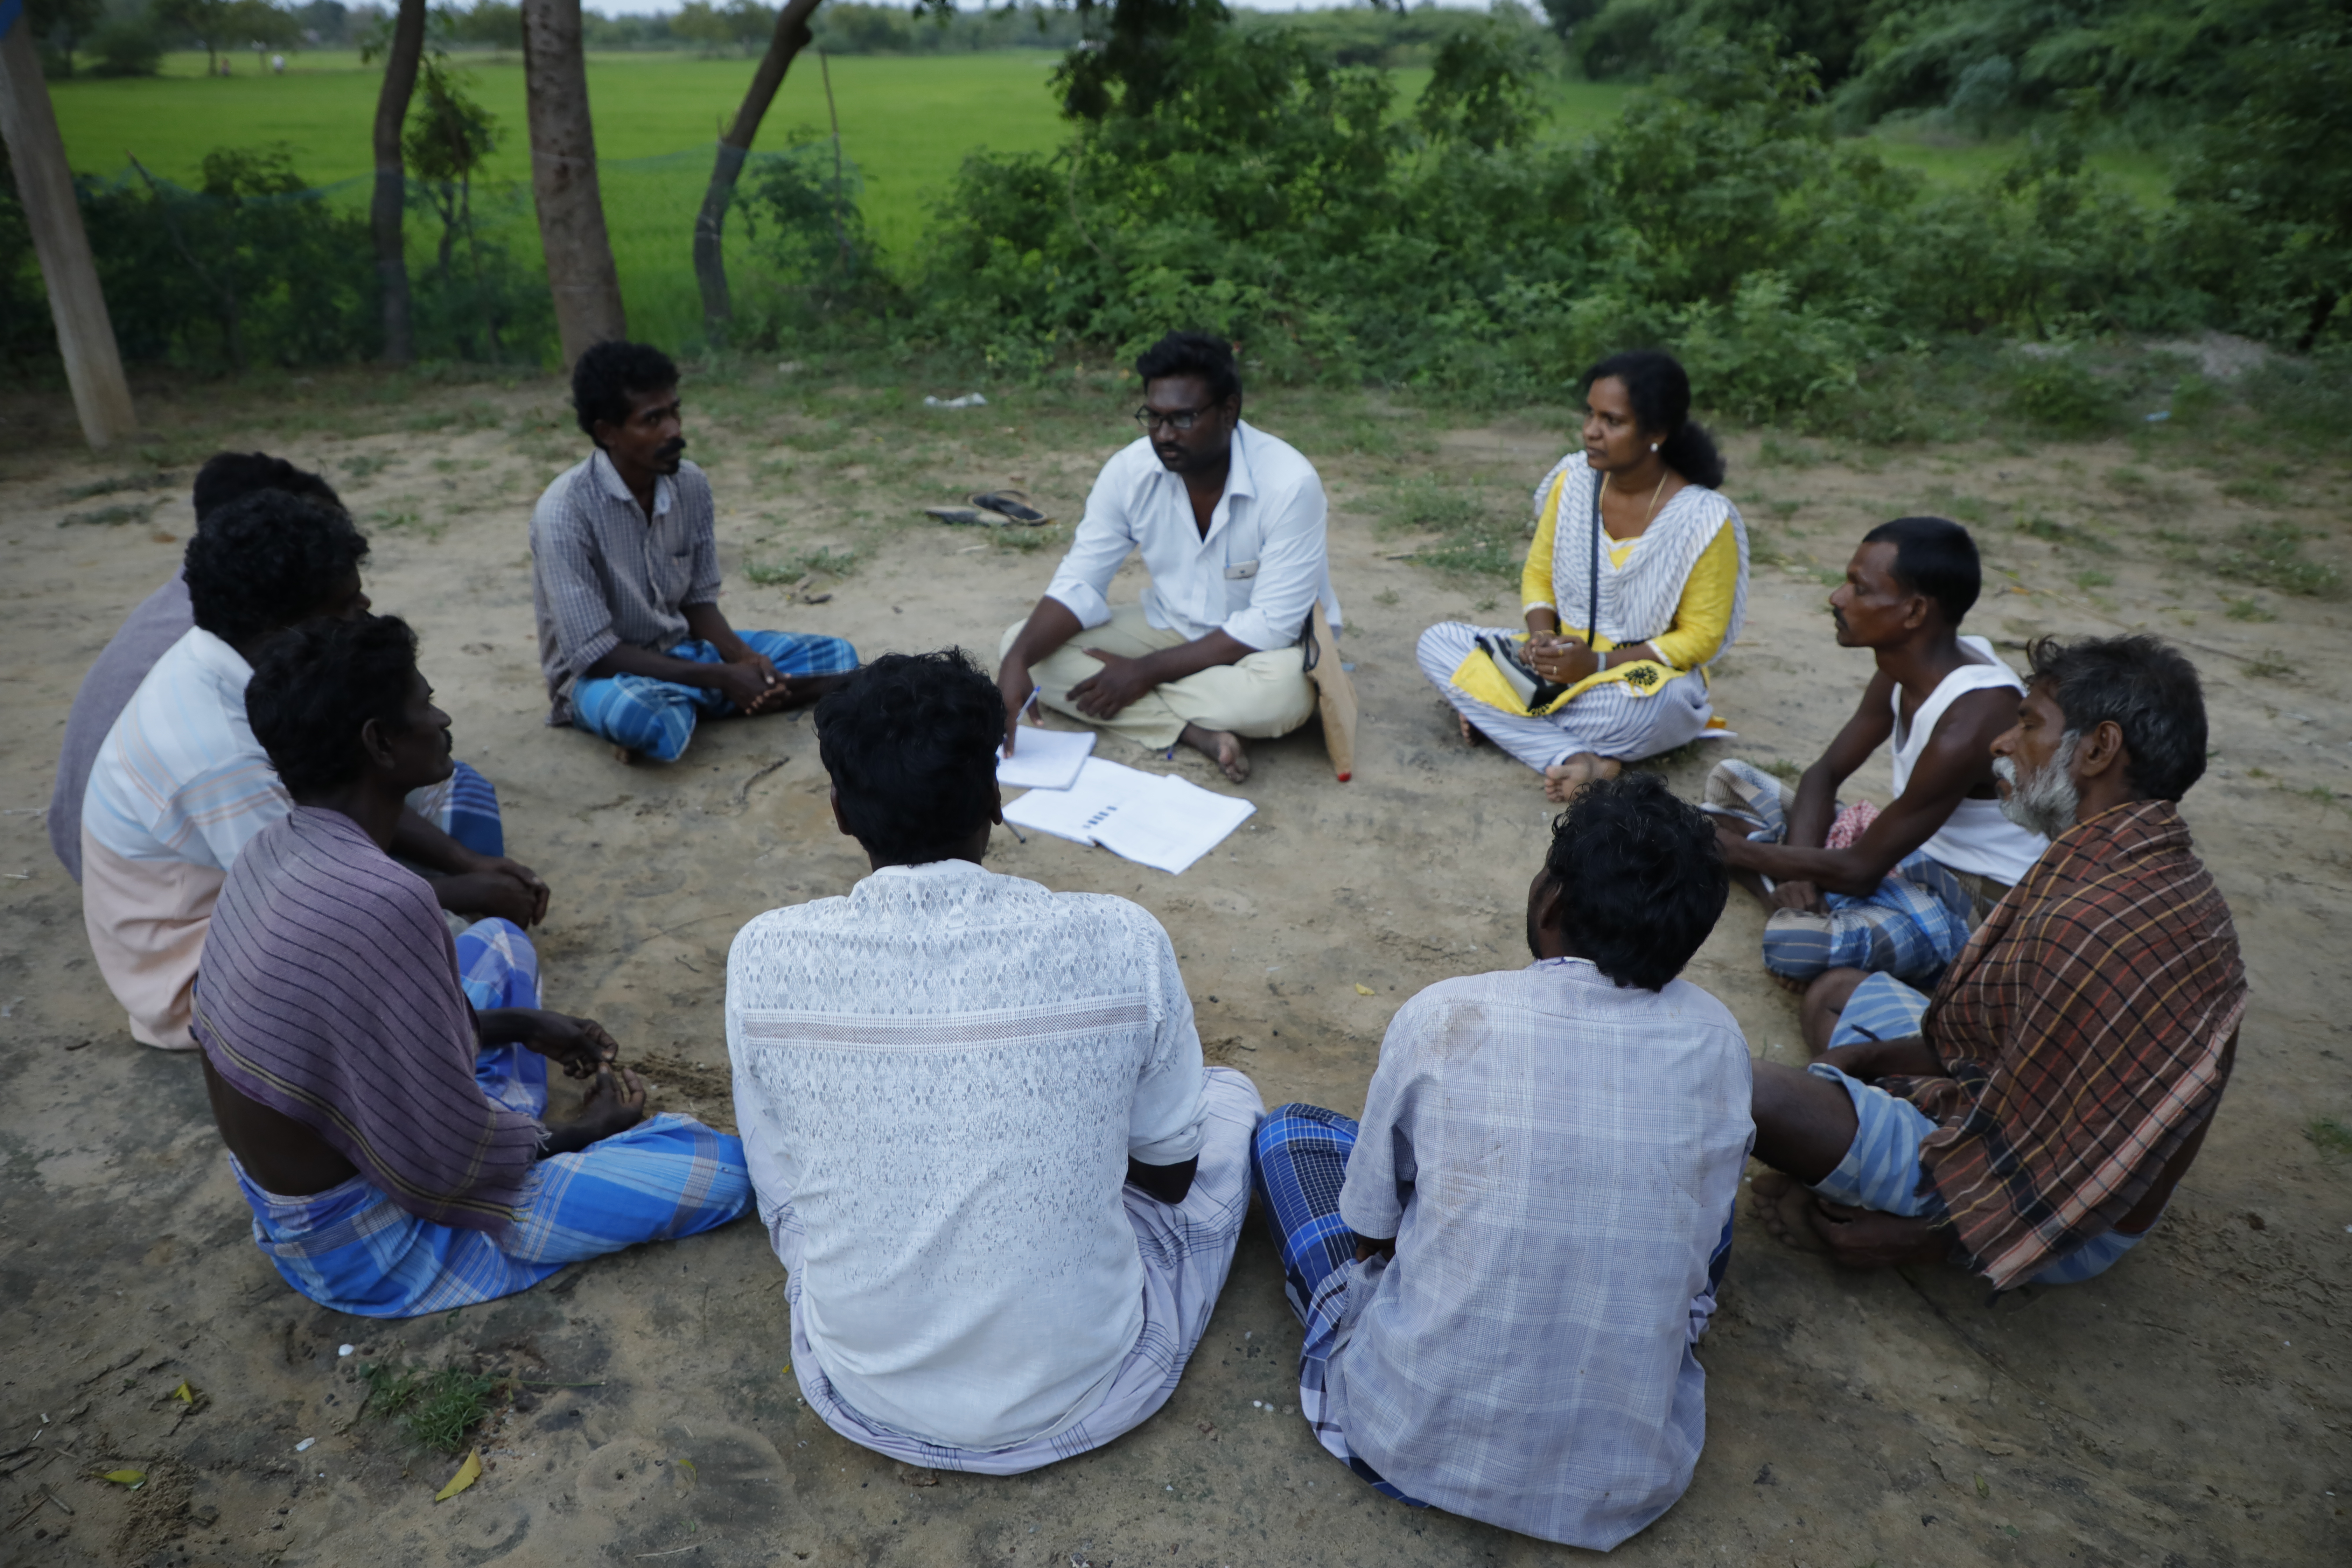 Focused group discussion with Dalit labourers